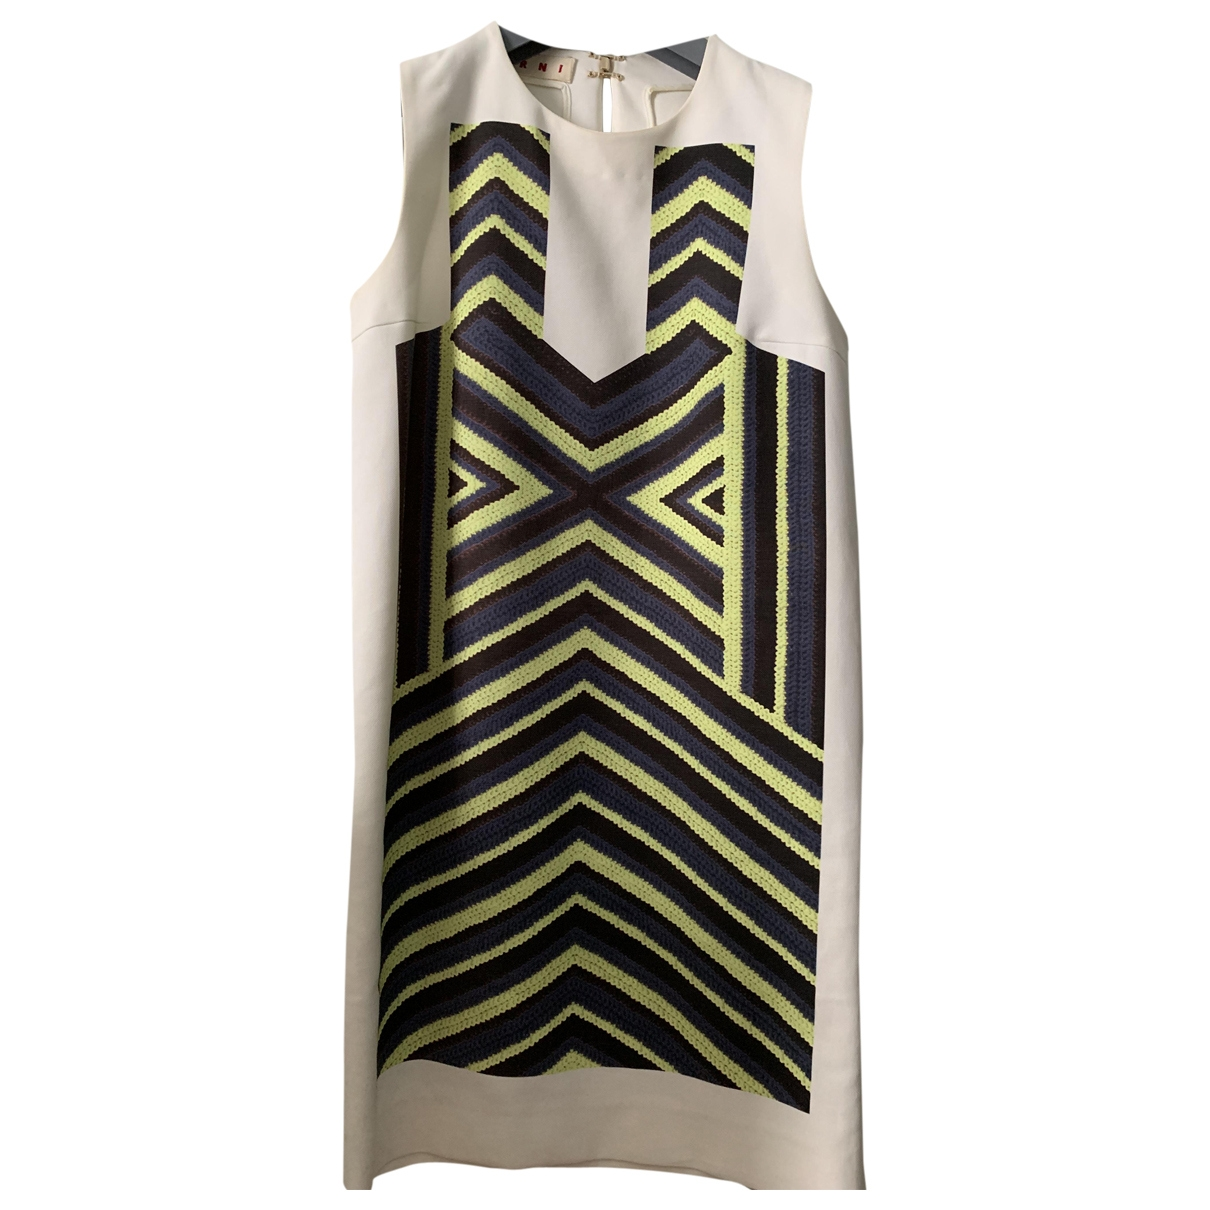 Marni \N Multicolour Cotton dress for Women 40 IT